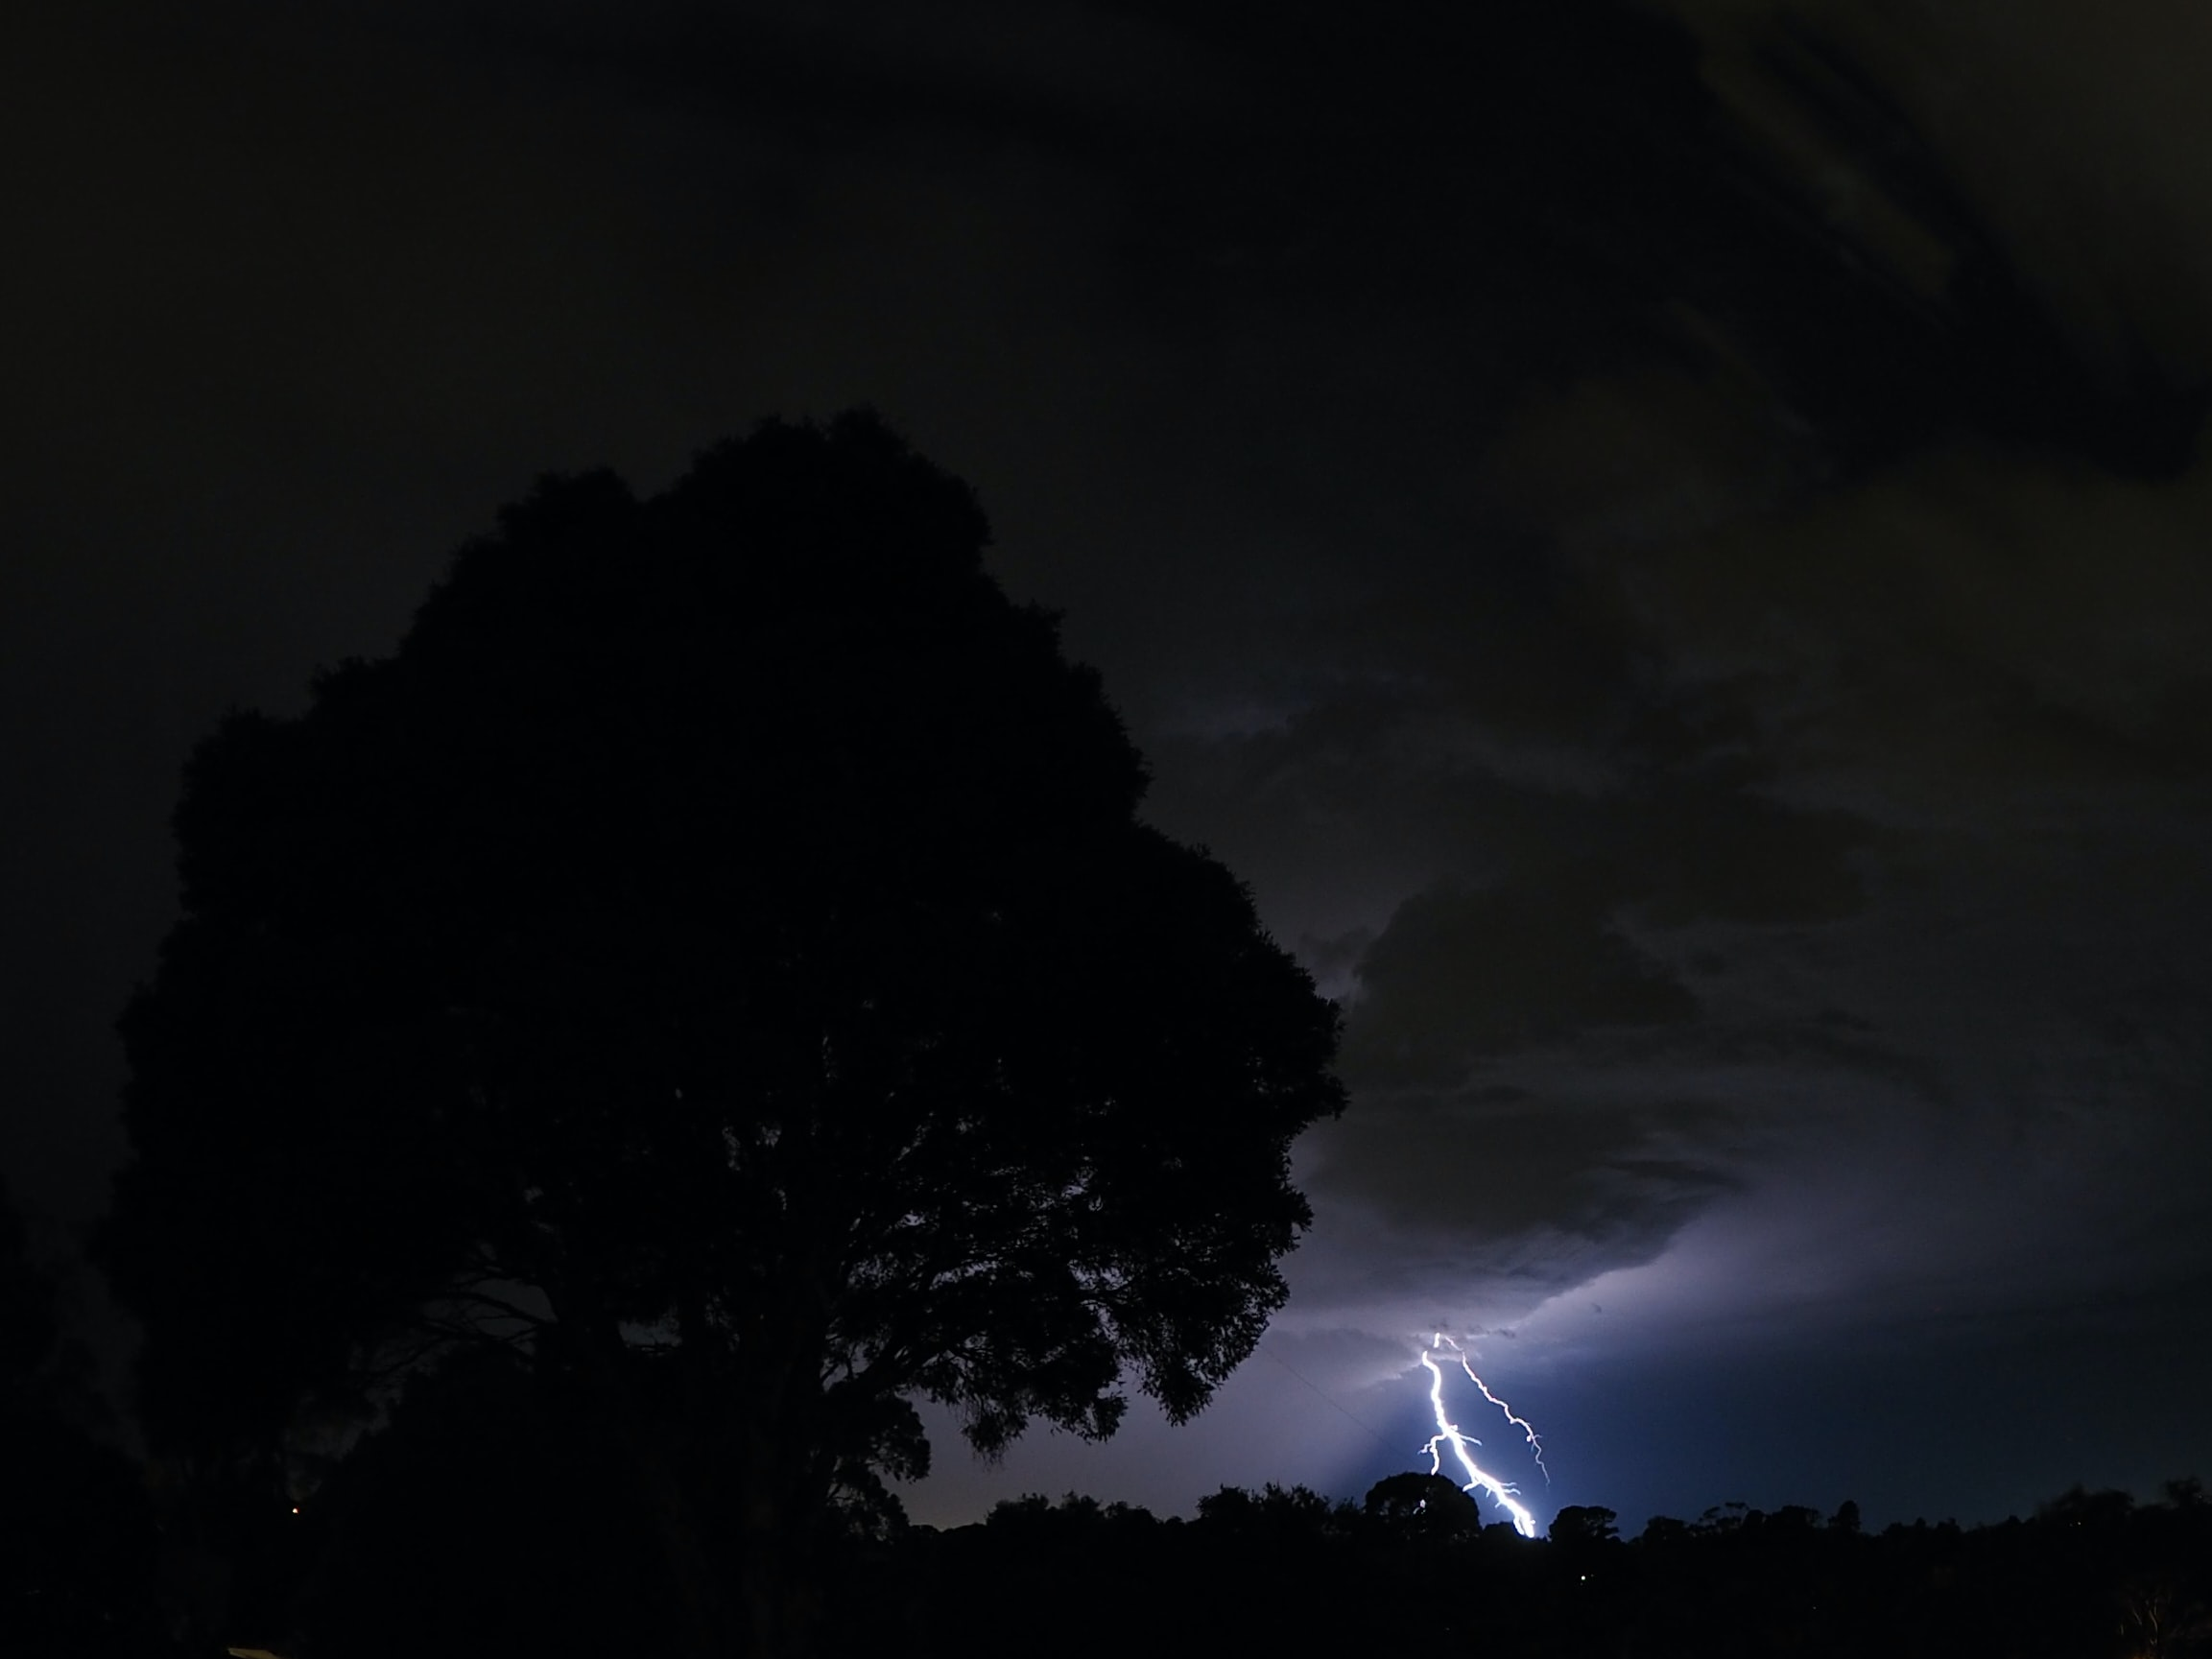 photography of silhouettes of tree in front of lightning bolt